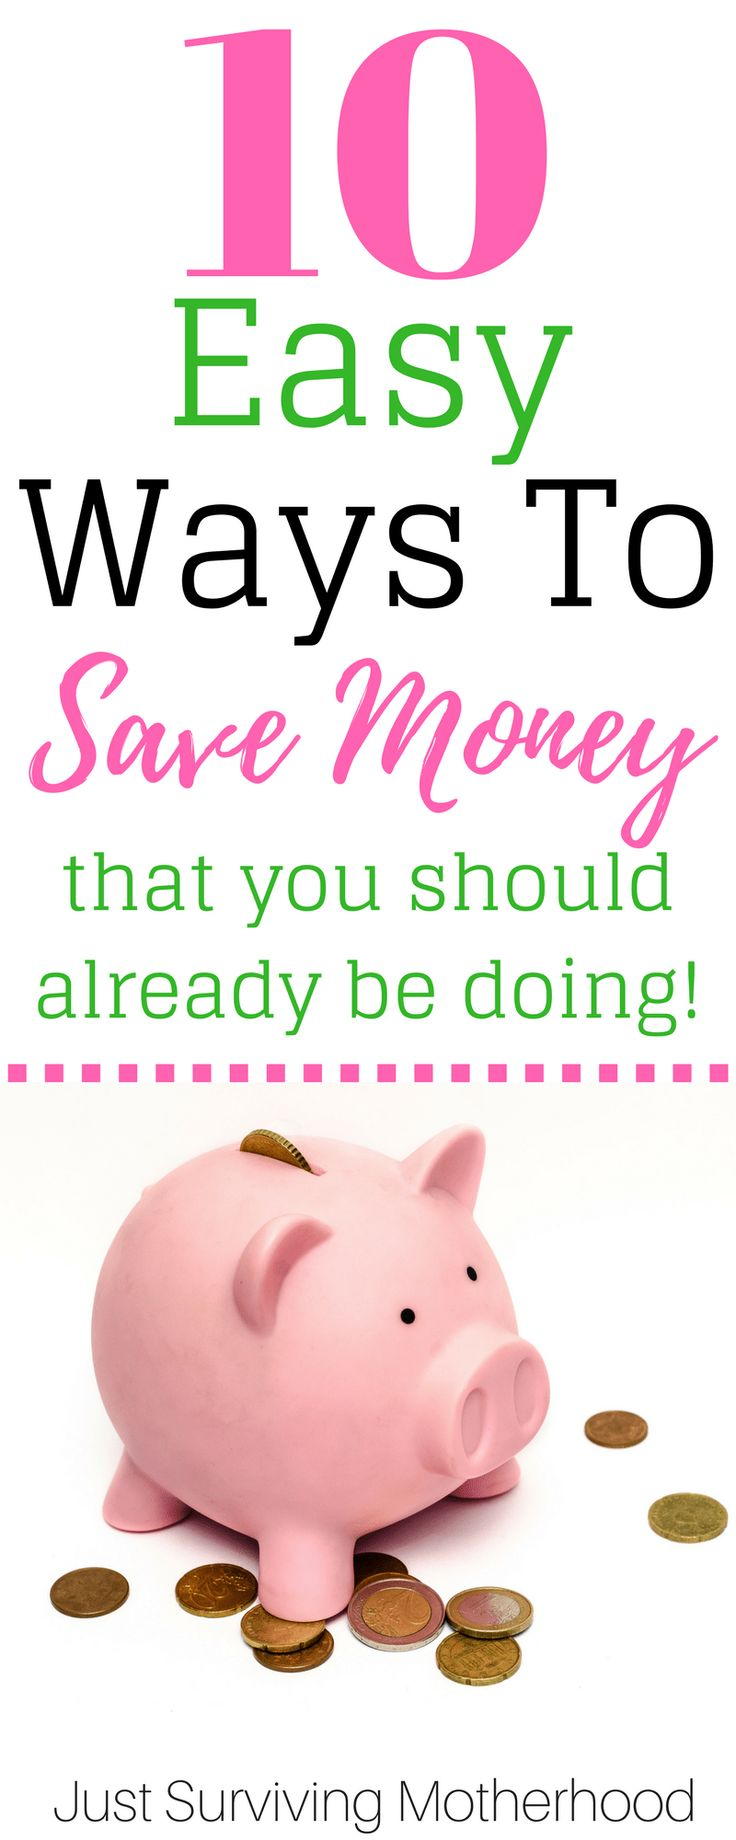 Are you trying to save more money? We all could stand to see a little more cushion in our bank accounts! Read this post for 9 super easy ways to save money in 2018!